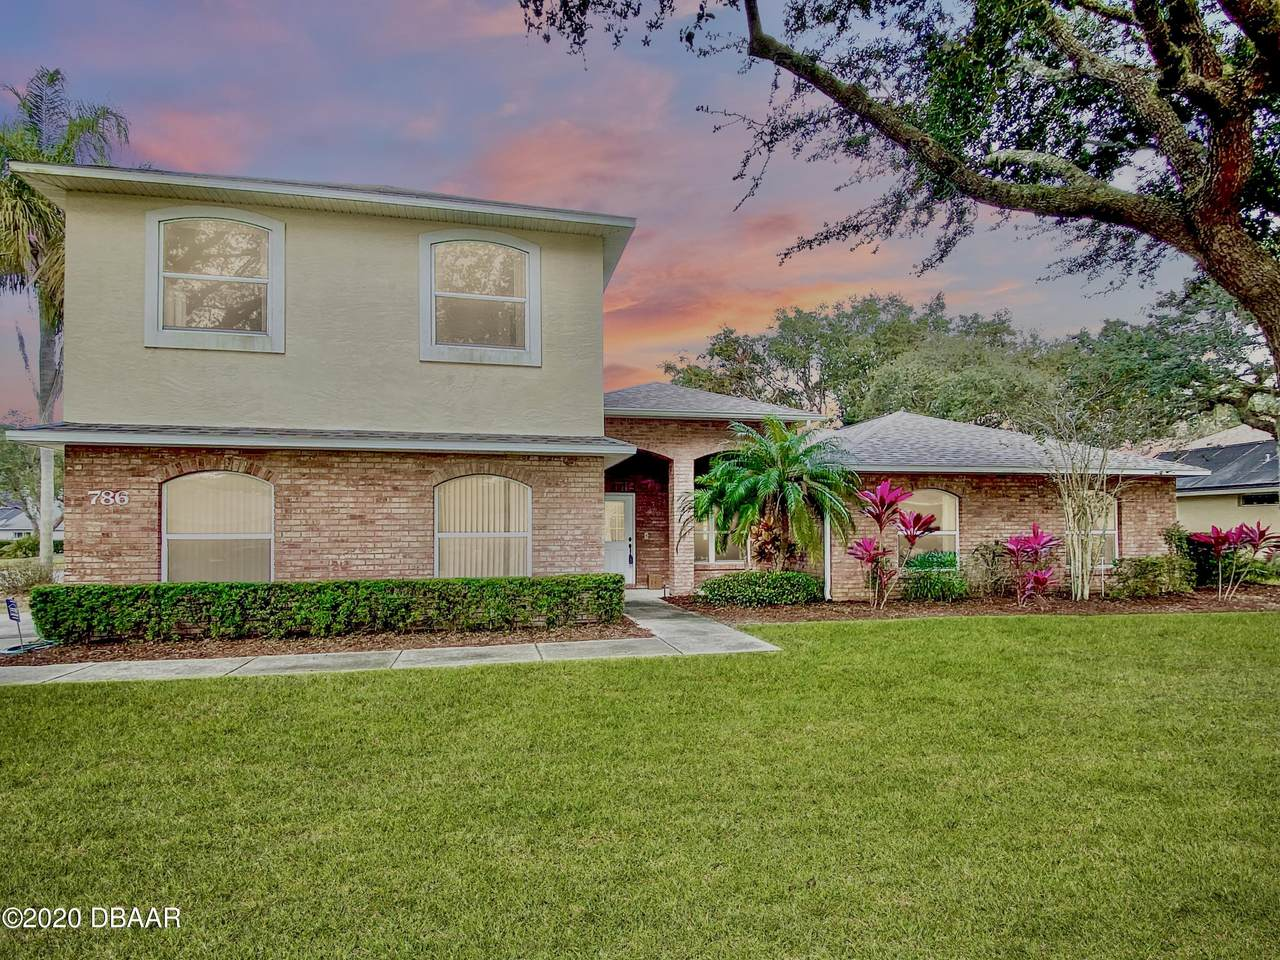 786 Sterling Chase Drive - Photo 1